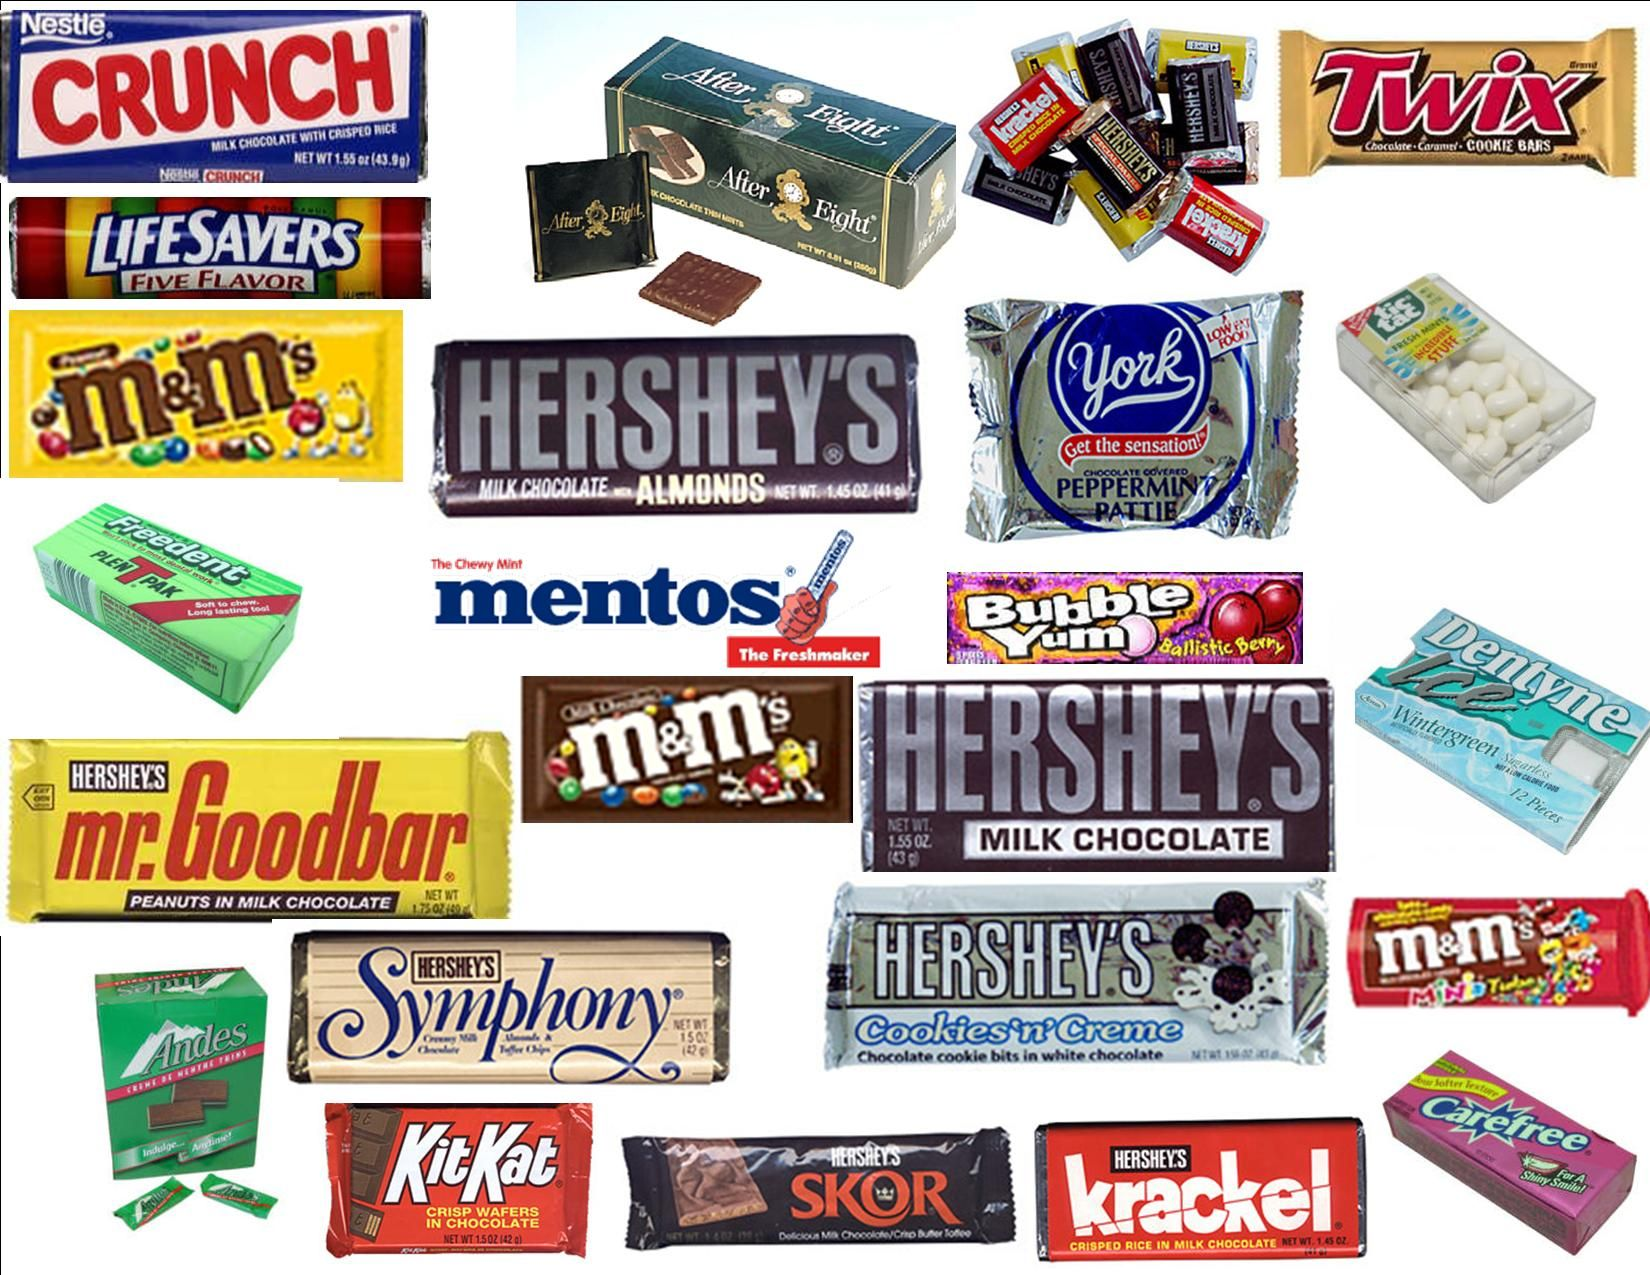 All the good stuff...well..except for the york and skor bar (blech ...